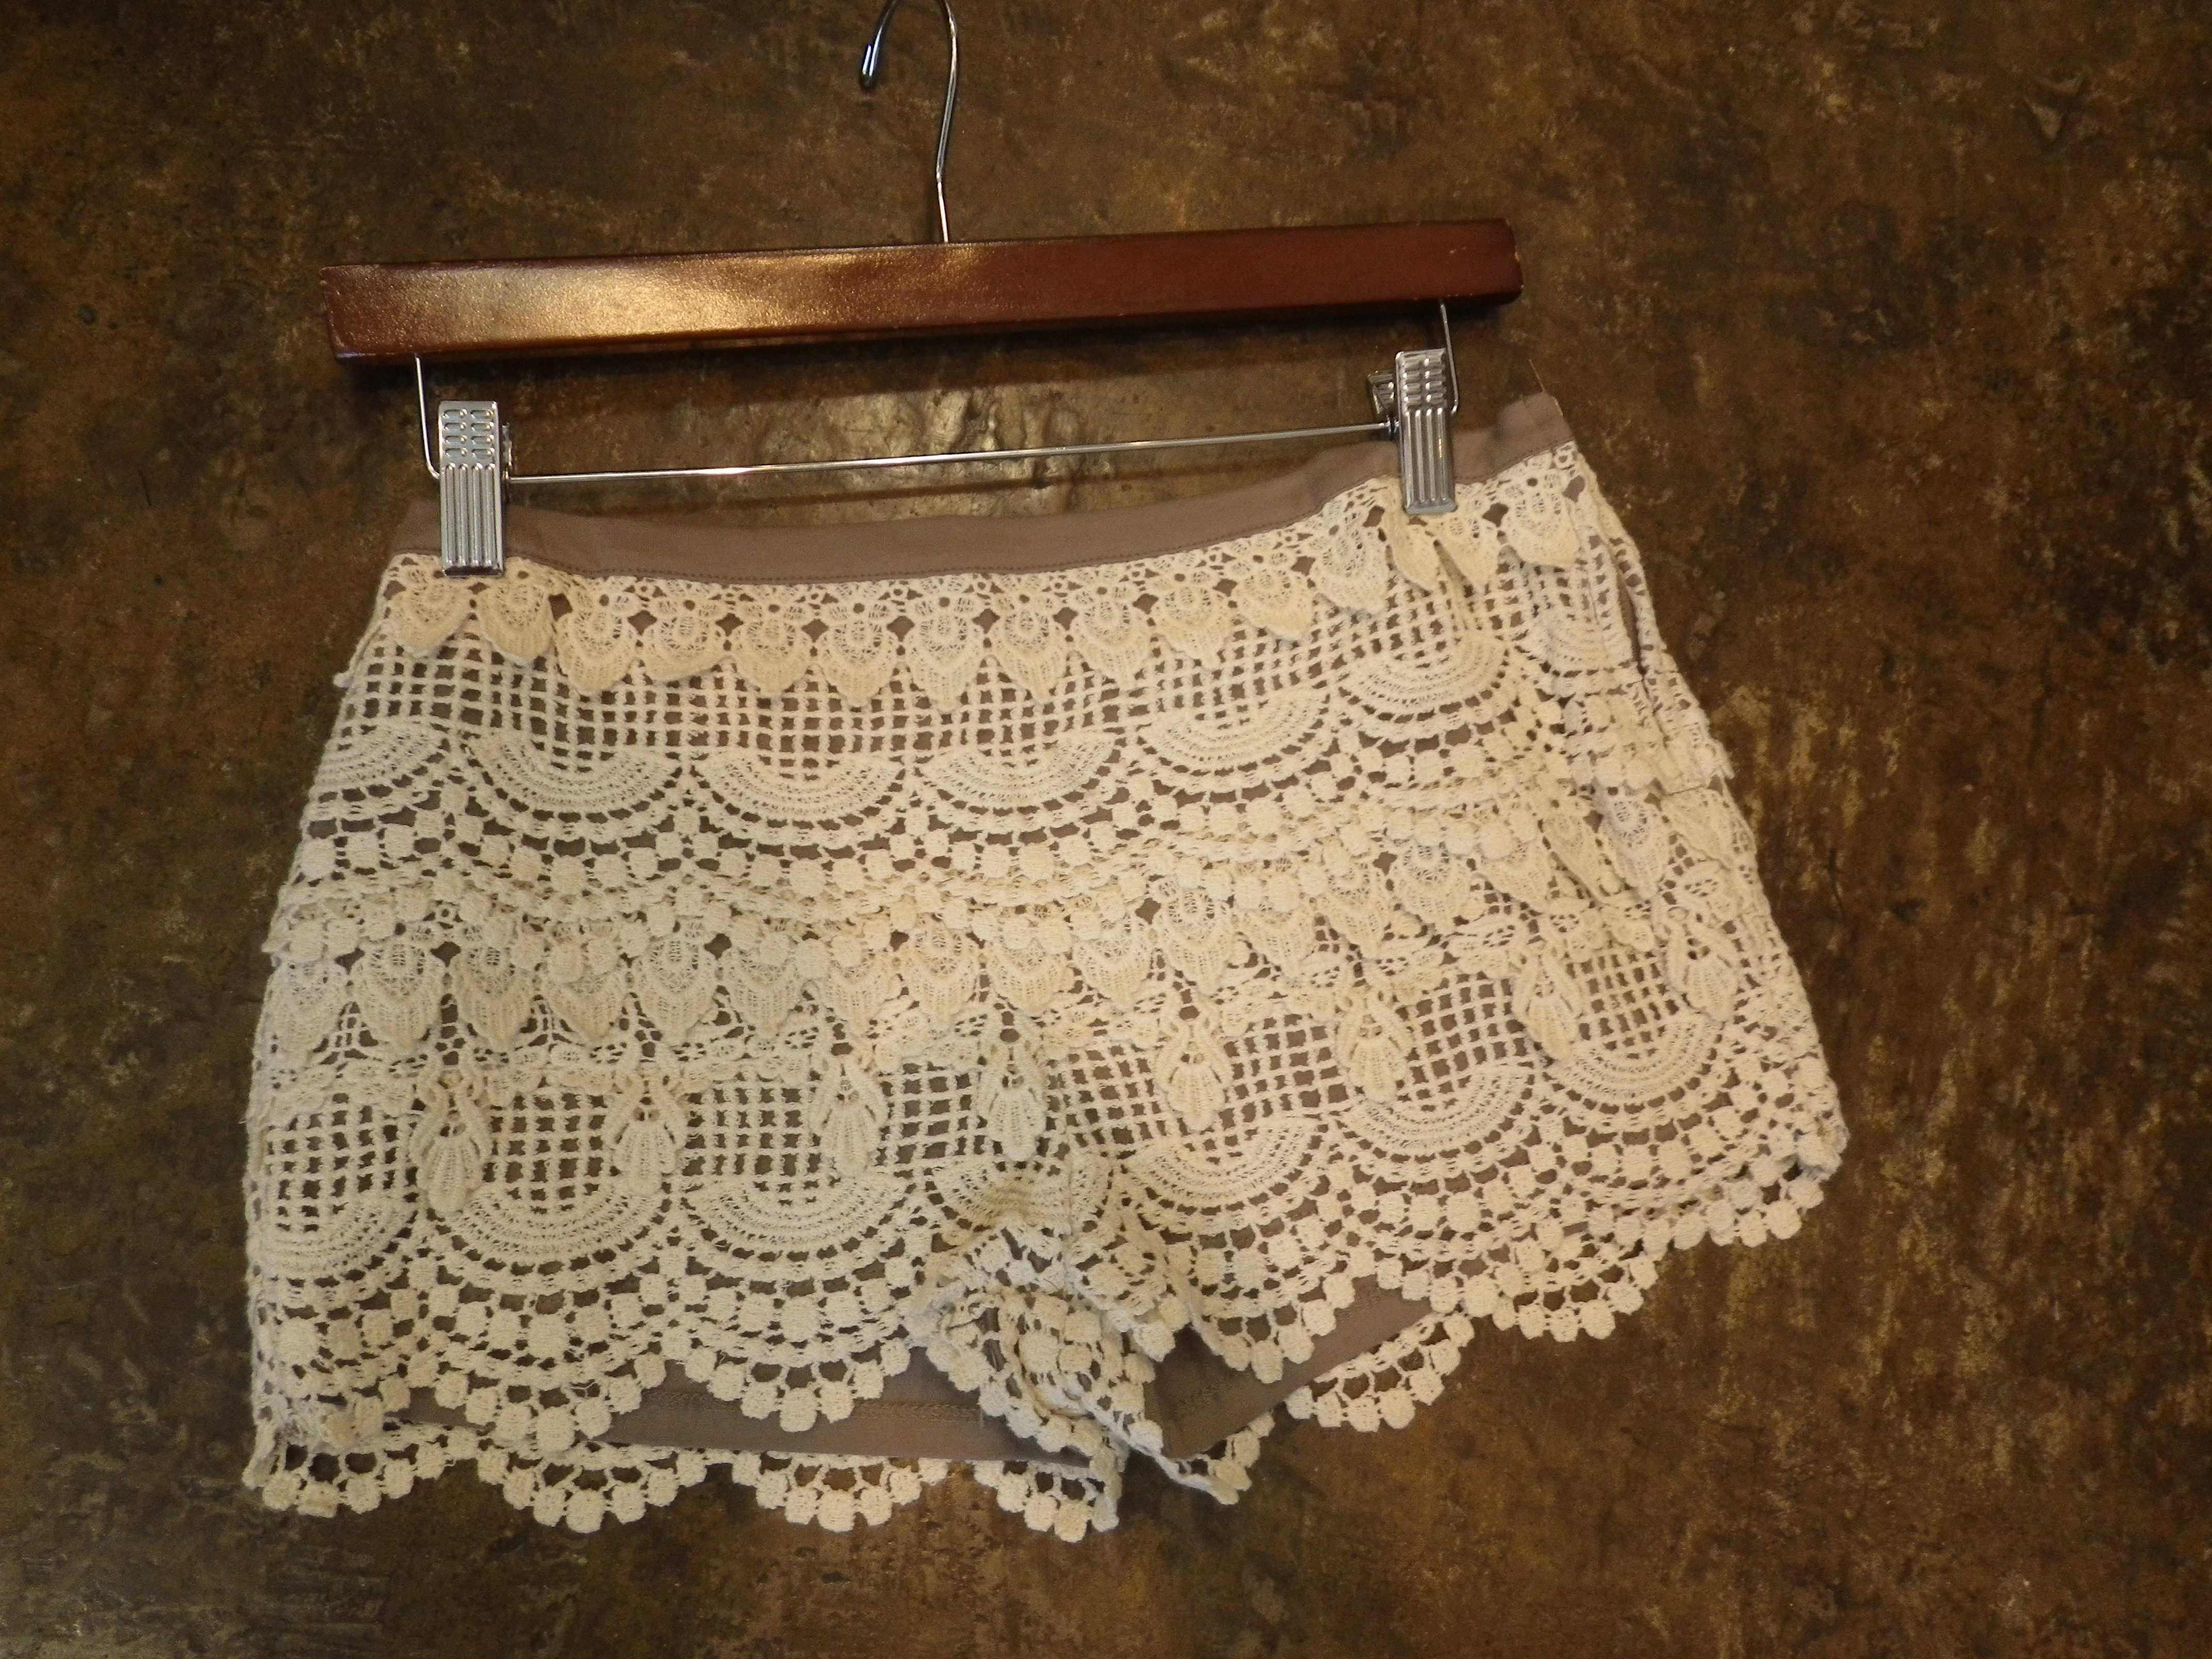 397cc8c2229da Wear these Lace Hot Shorts with Booties   a Crop Top!! HOT OR NOT